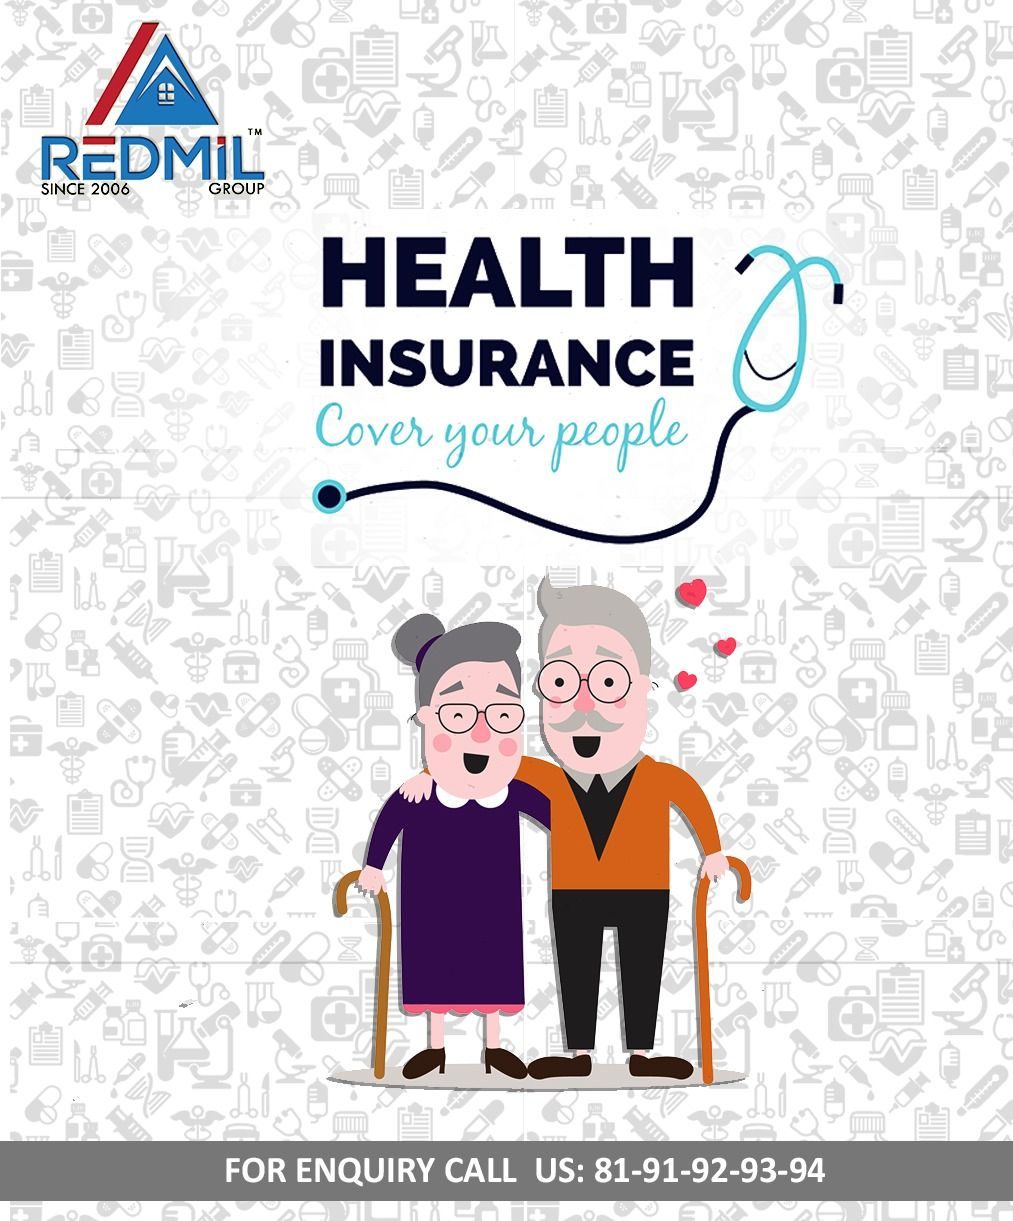 Compare health insurance plans from top health insurance